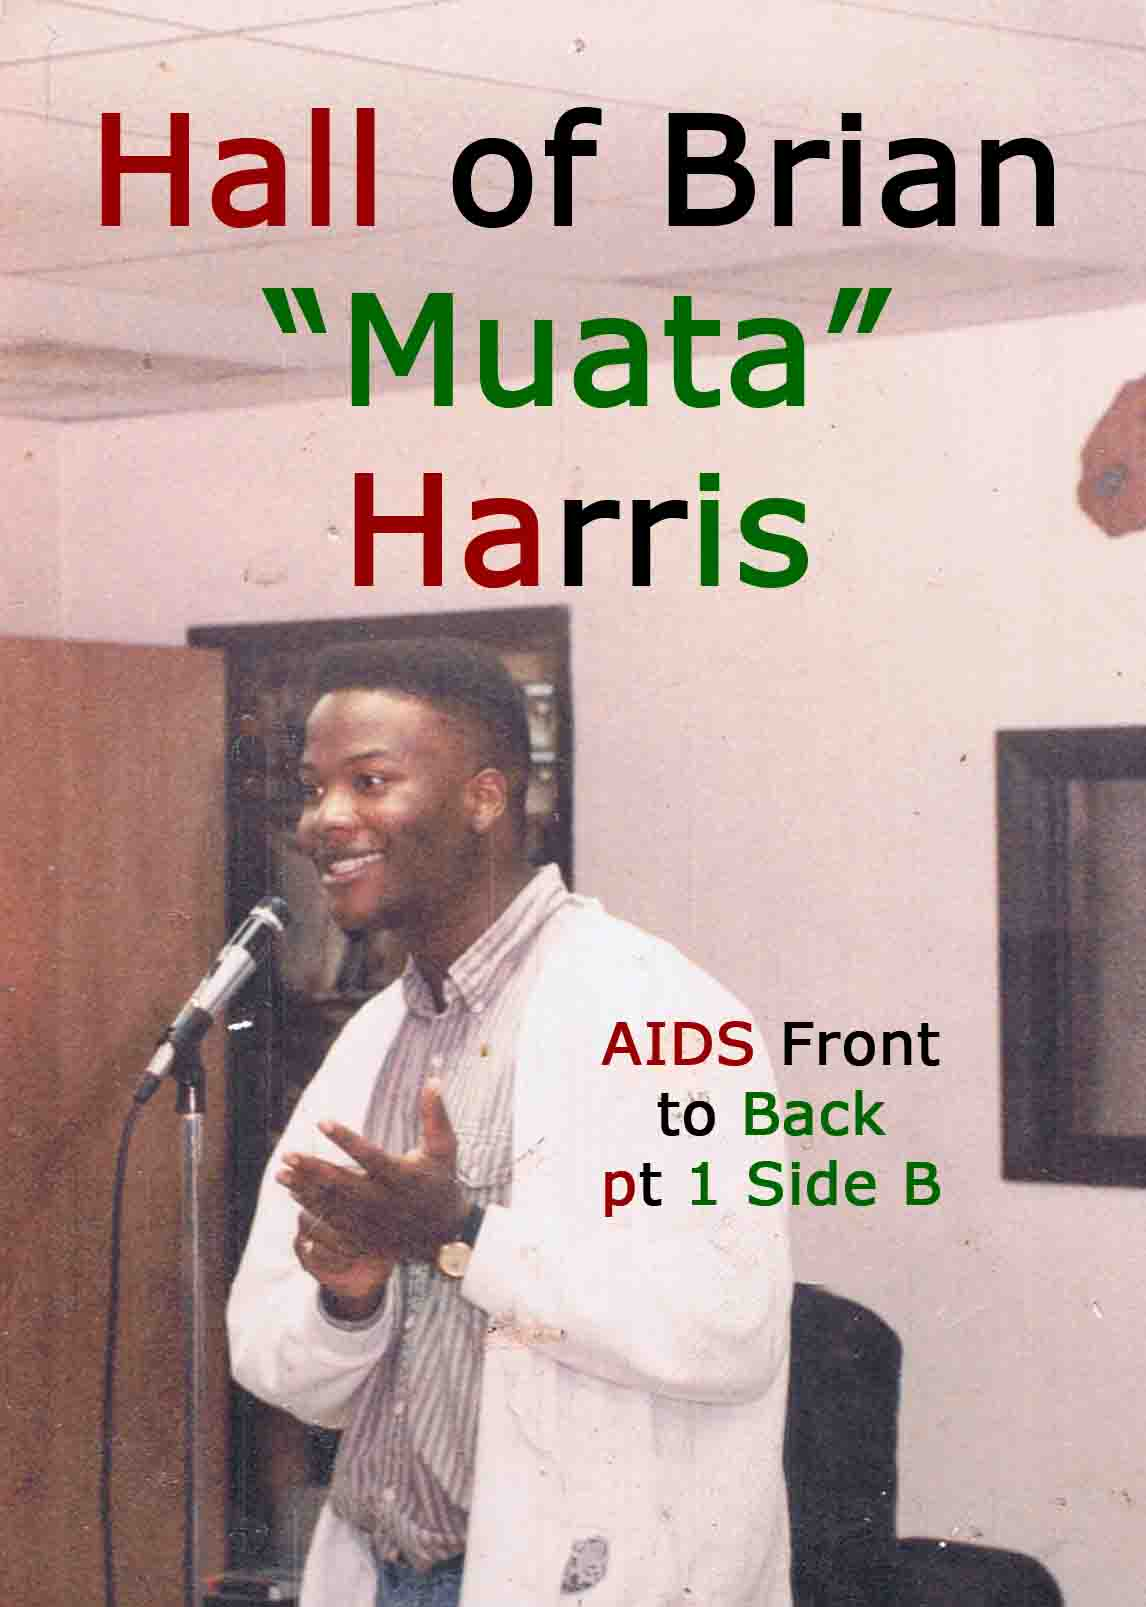 AIDS front to back pt 1 side B